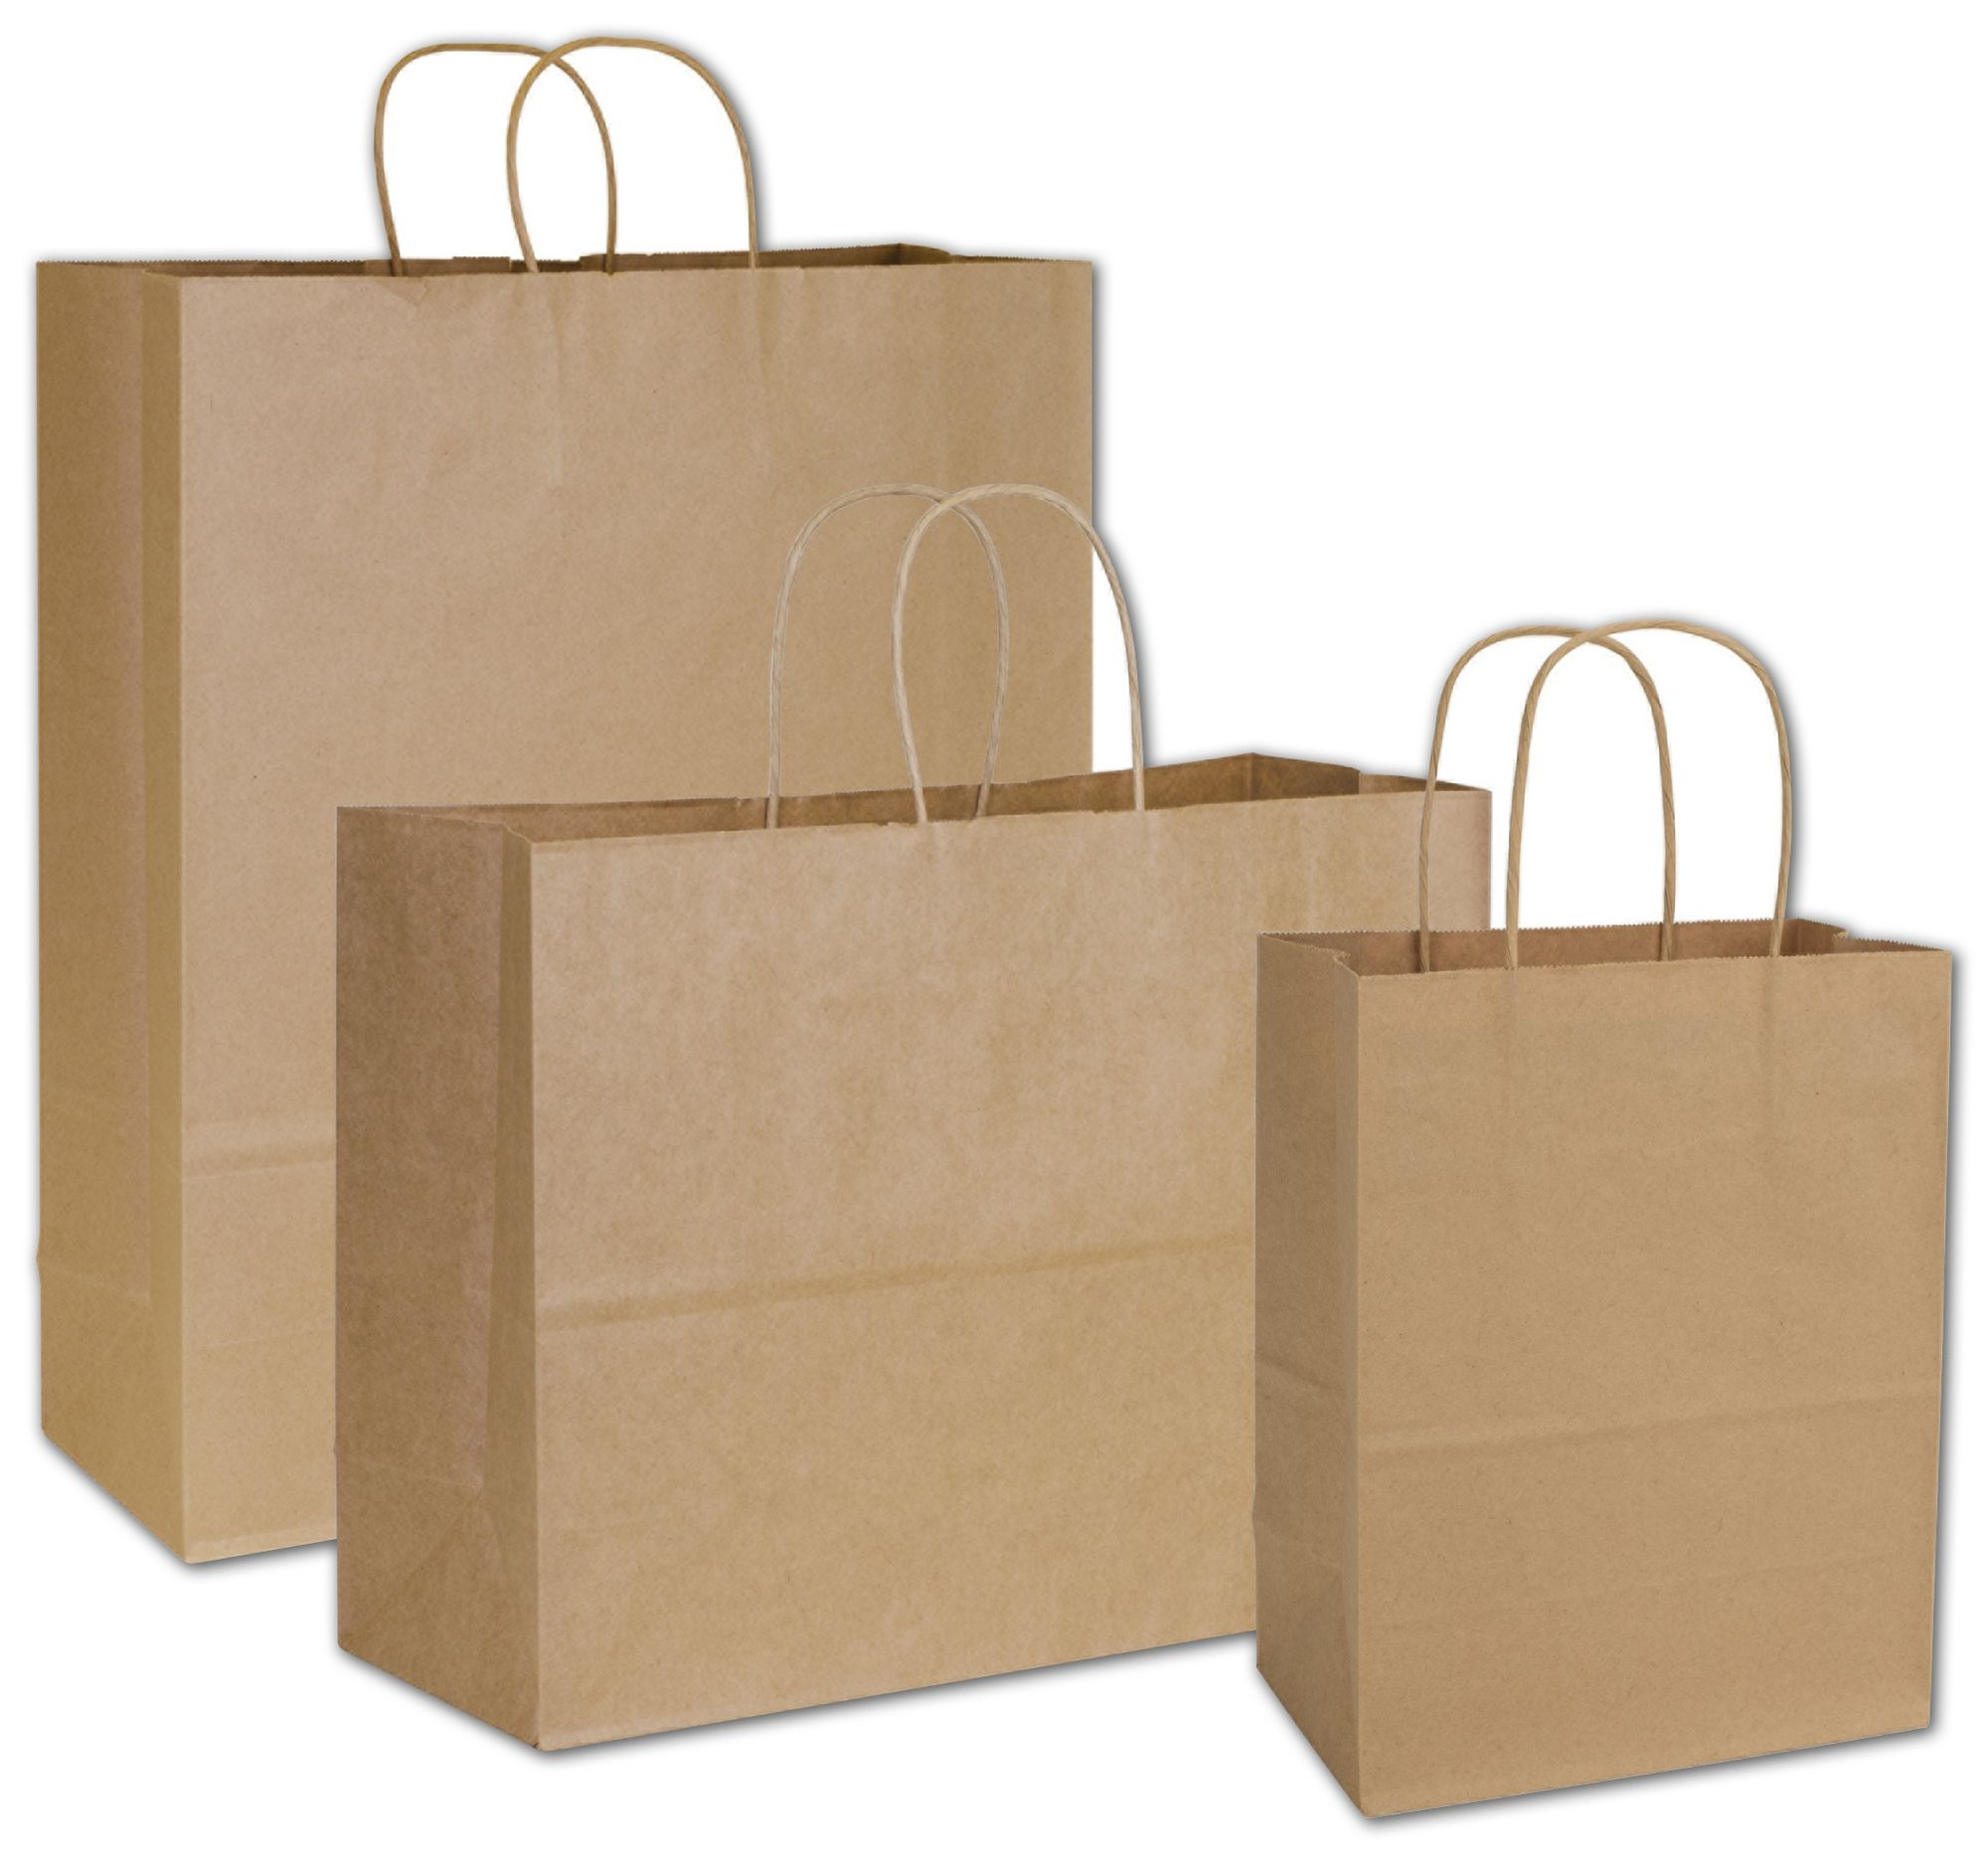 Choice is easy. Save money on this package of Kraft Shopping Bag Assortment. Choose from 3 sizes.